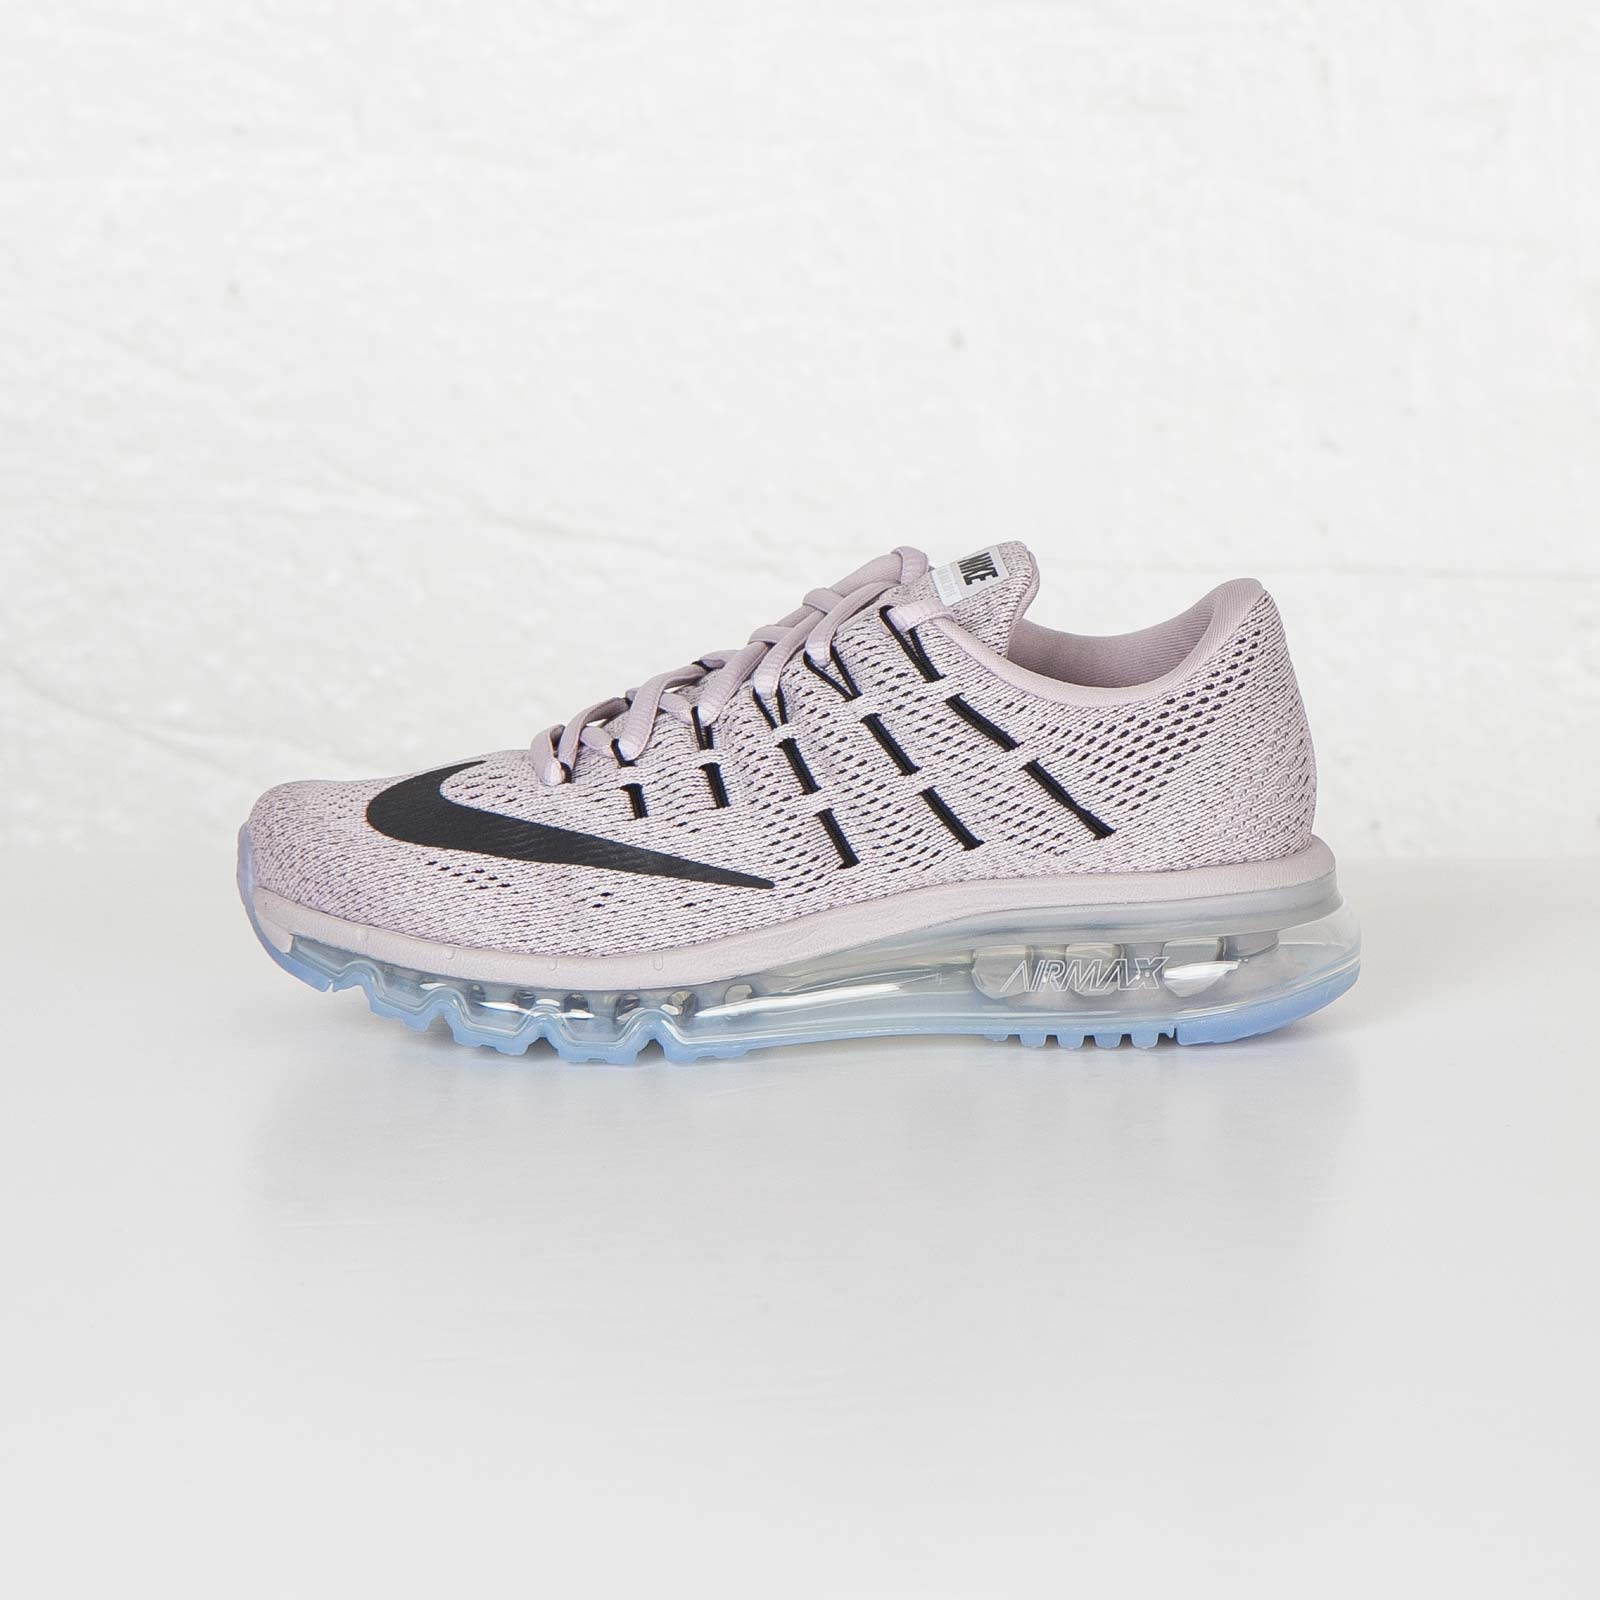 separation shoes 5c888 7ad86 Nike Wmns Air Max 2016 - 806772-501 - Sneakersnstuff   sneakers    streetwear online since 1999